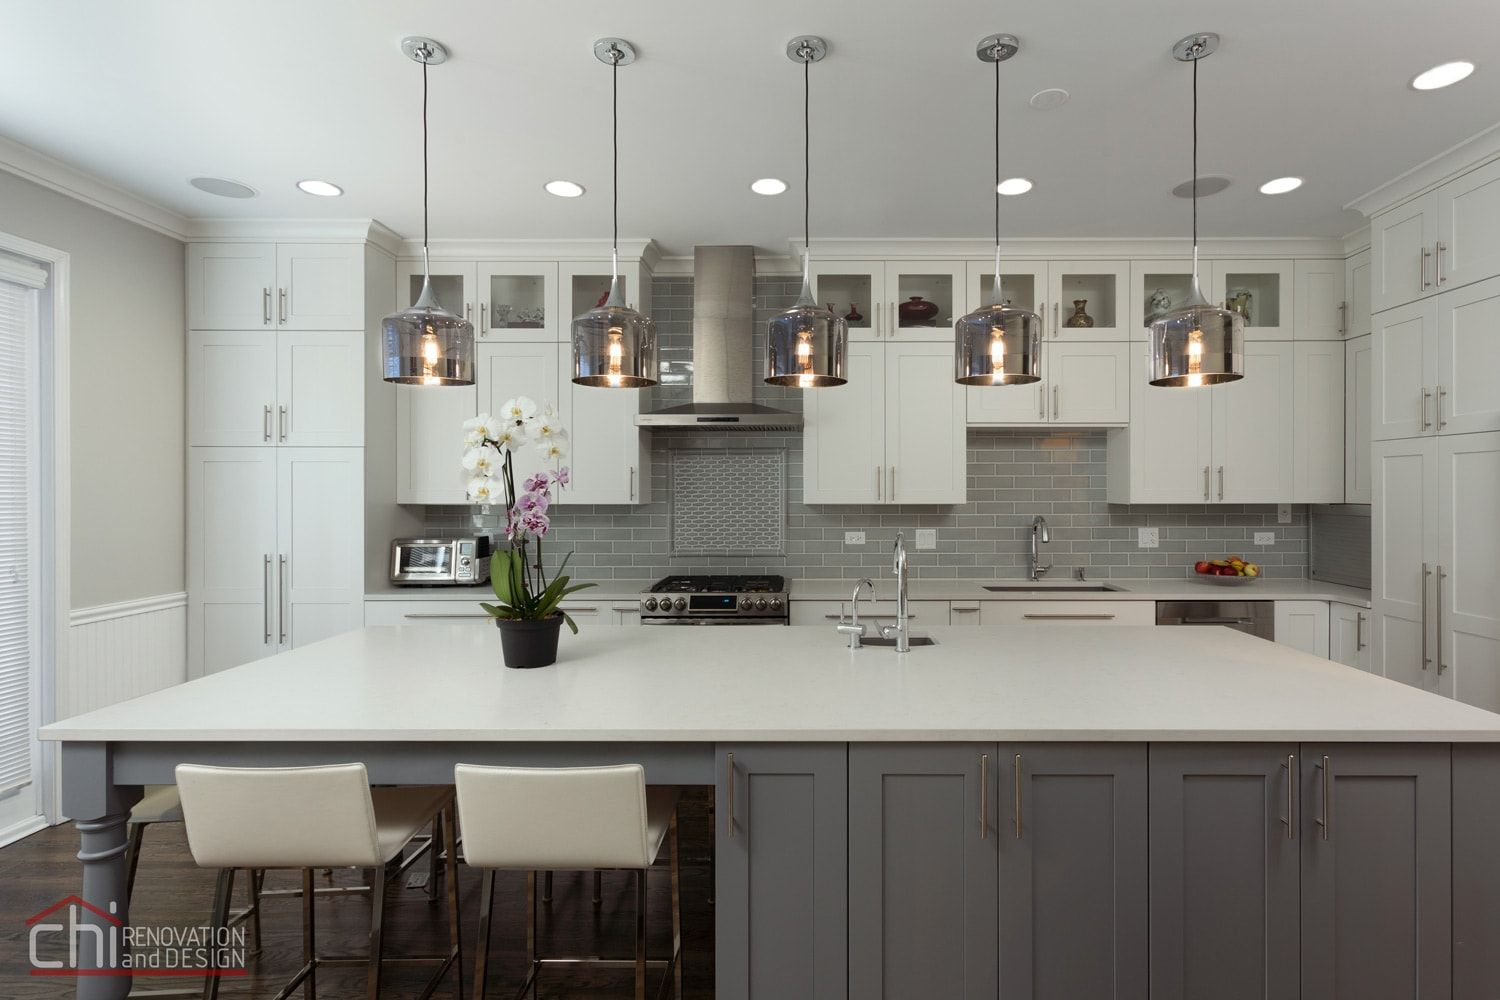 This five step guide by Chi Renovation & Design will help you ...